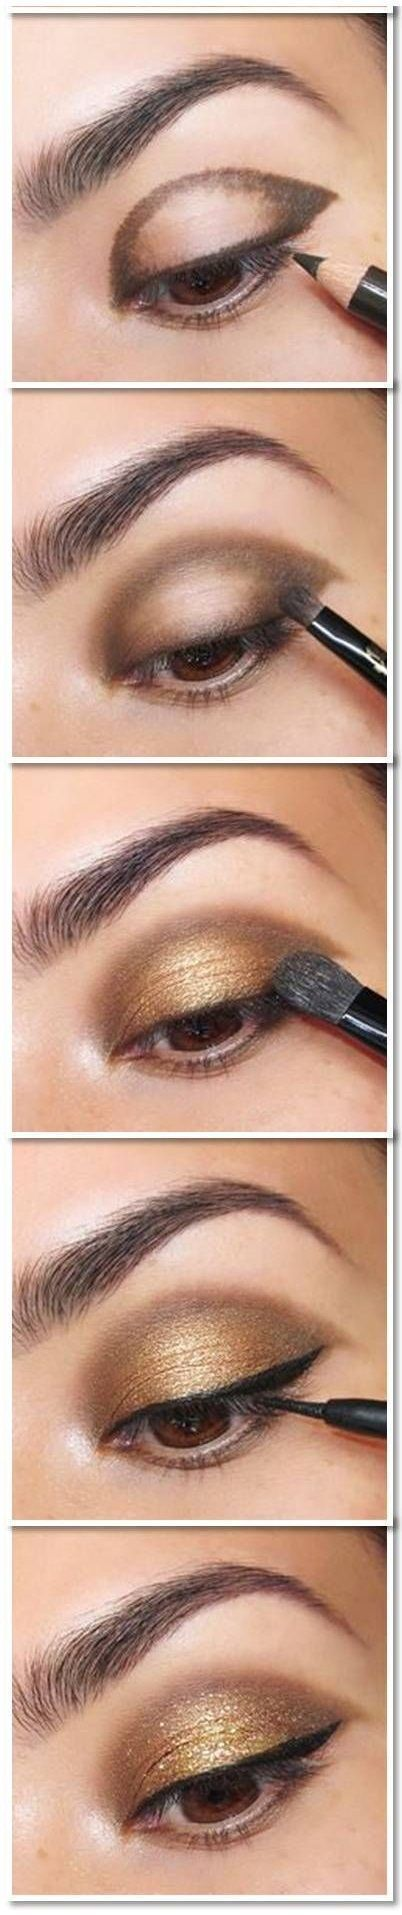 Gold Smokey Eye Makeup Tutorial - How To Put On The Best Smokey Eyeshadow | Step By Step Tutorial For Brown Eyes by Makeup Tutorials http://makeuptutorials.com/13-best-eyeshadow-tutorials-brown-eyes/